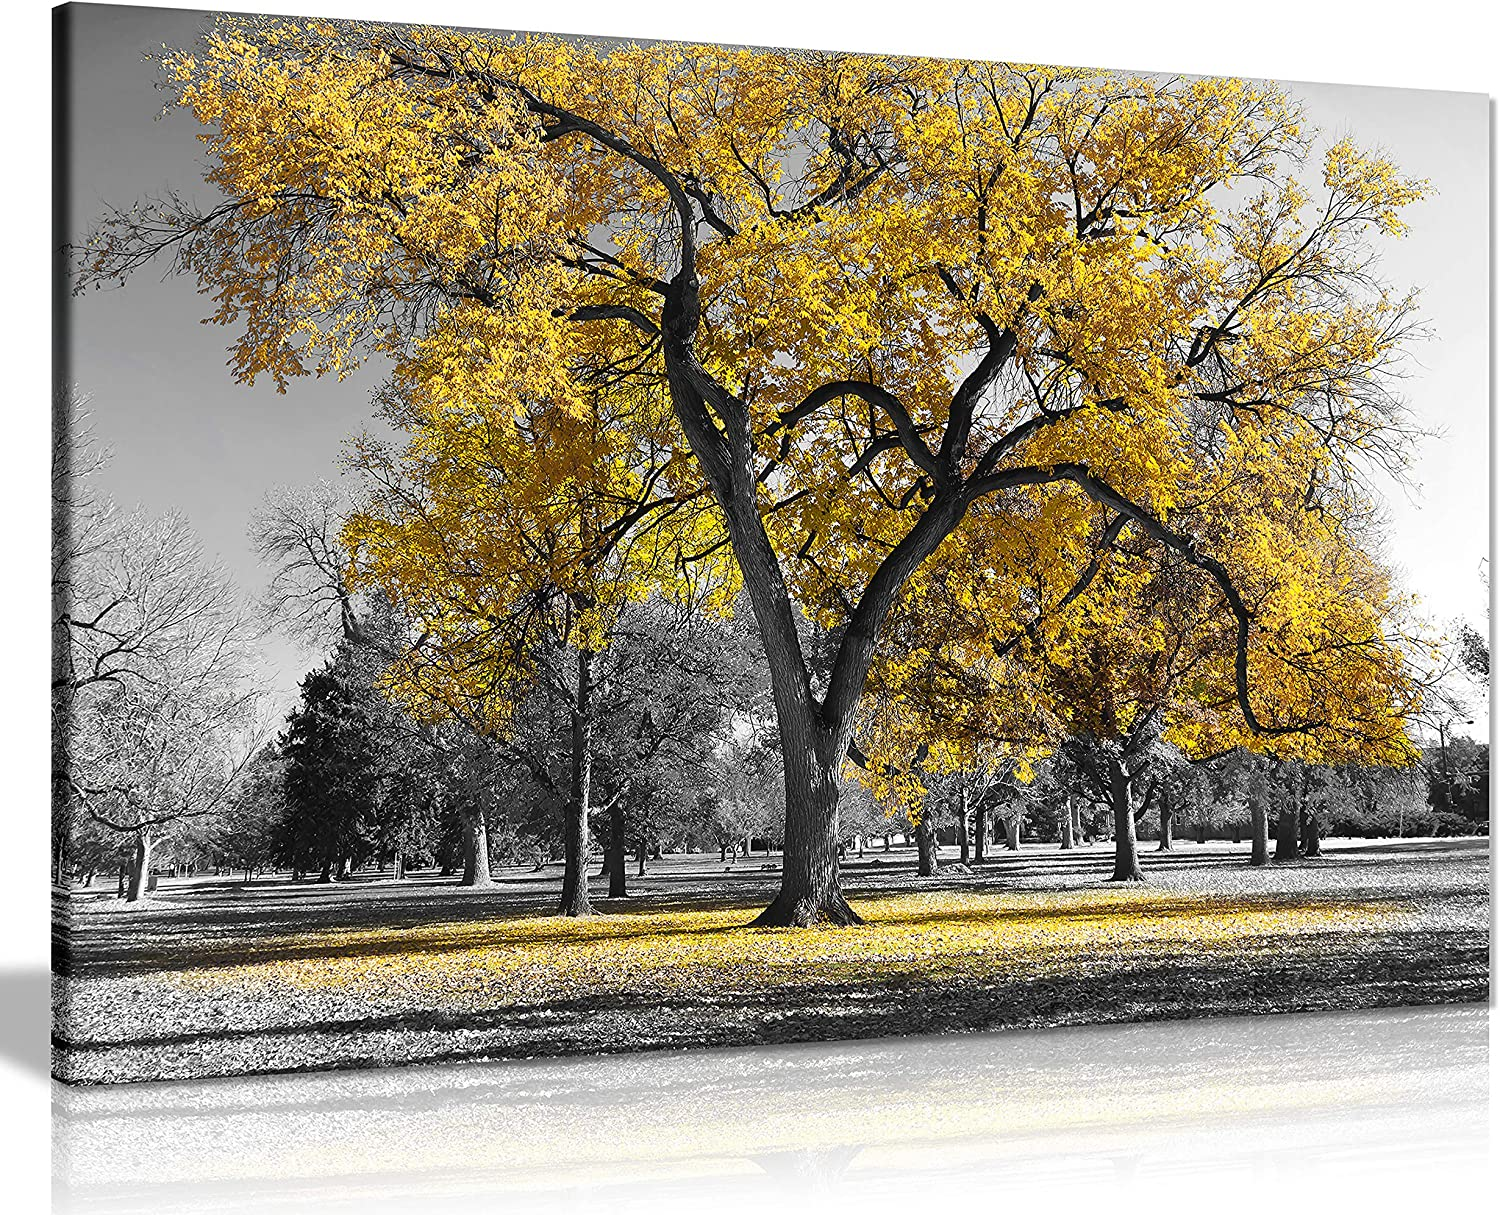 Panther Print, Large Canvas Wall Art, Beautiful Living Room and Bedroom Framed Art, Quality Picture Prints for Walls, Nature Design, Large Tree Yellow Leaves, Print for Special Occasions (76x51cm)